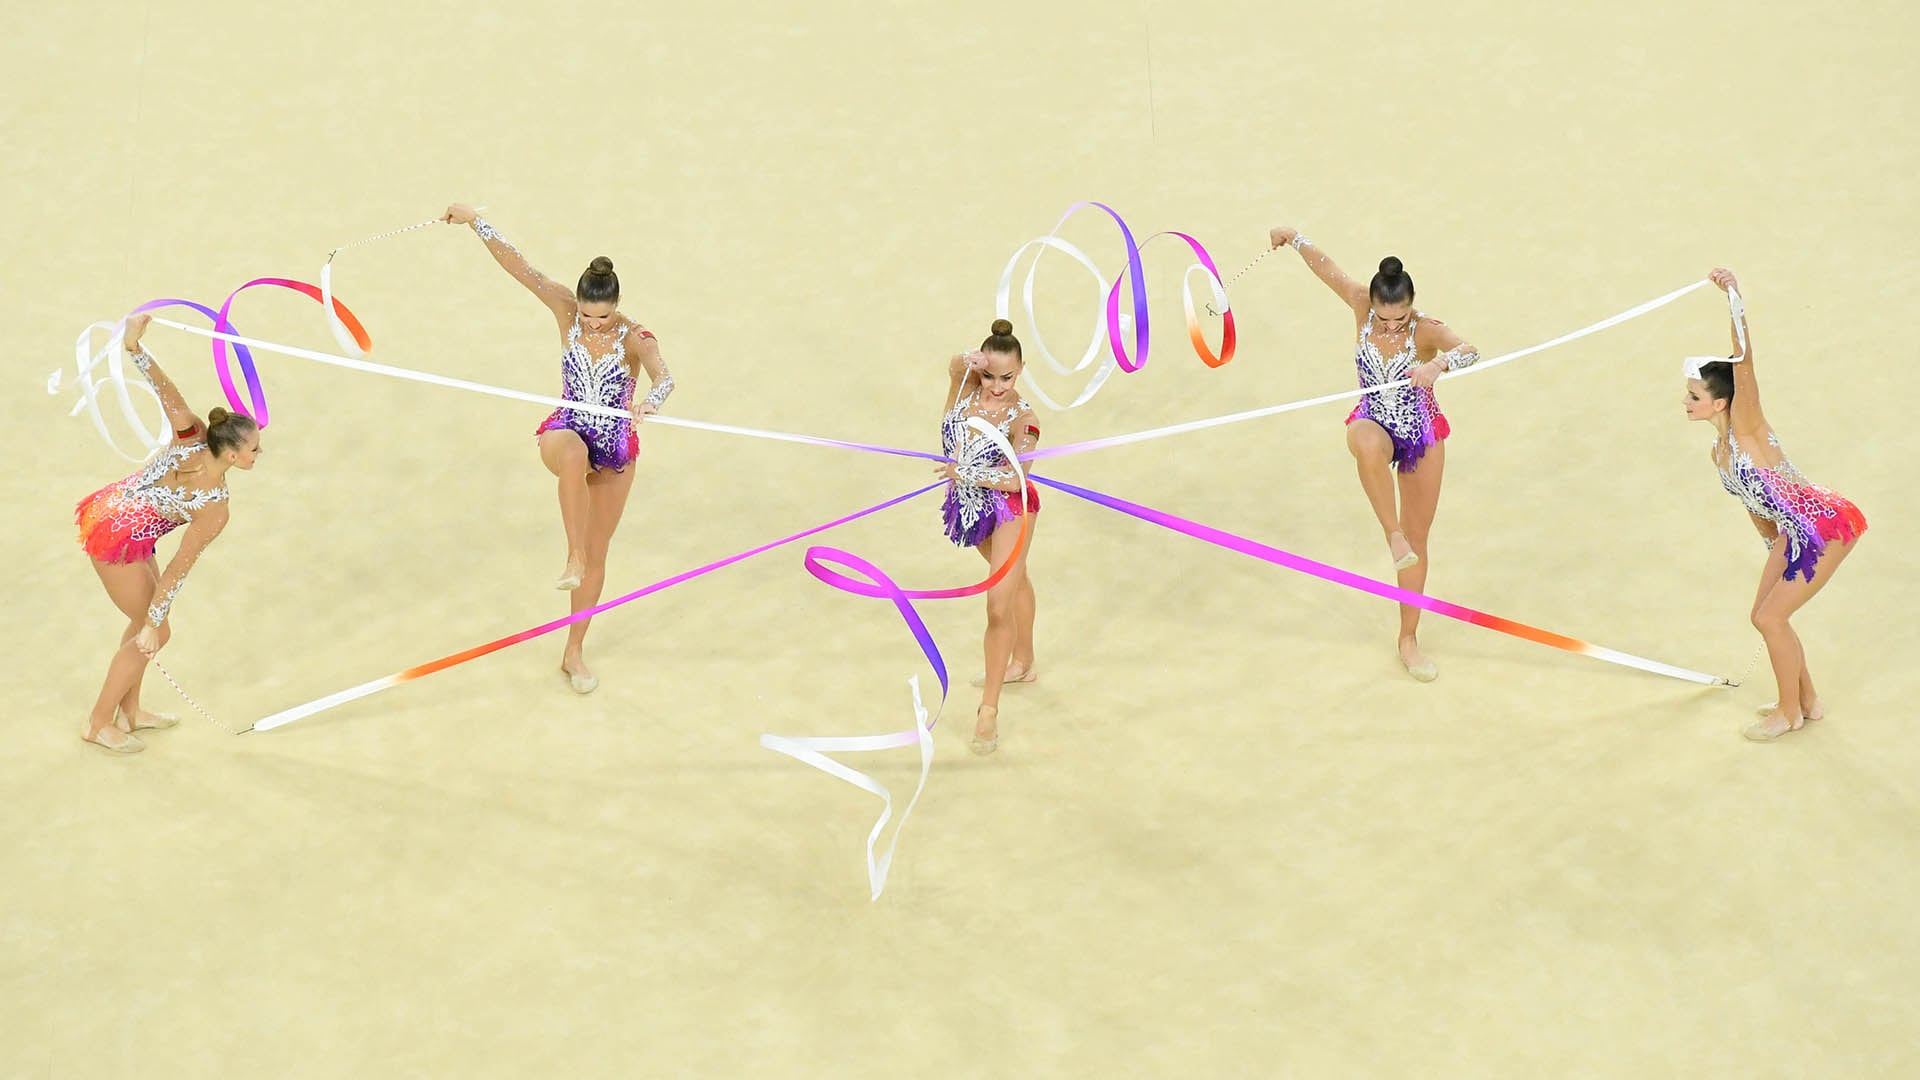 Rhythmic gymnastics competition kicks off on August 5 at the Tokyo Olympic Games. (credit: USA...